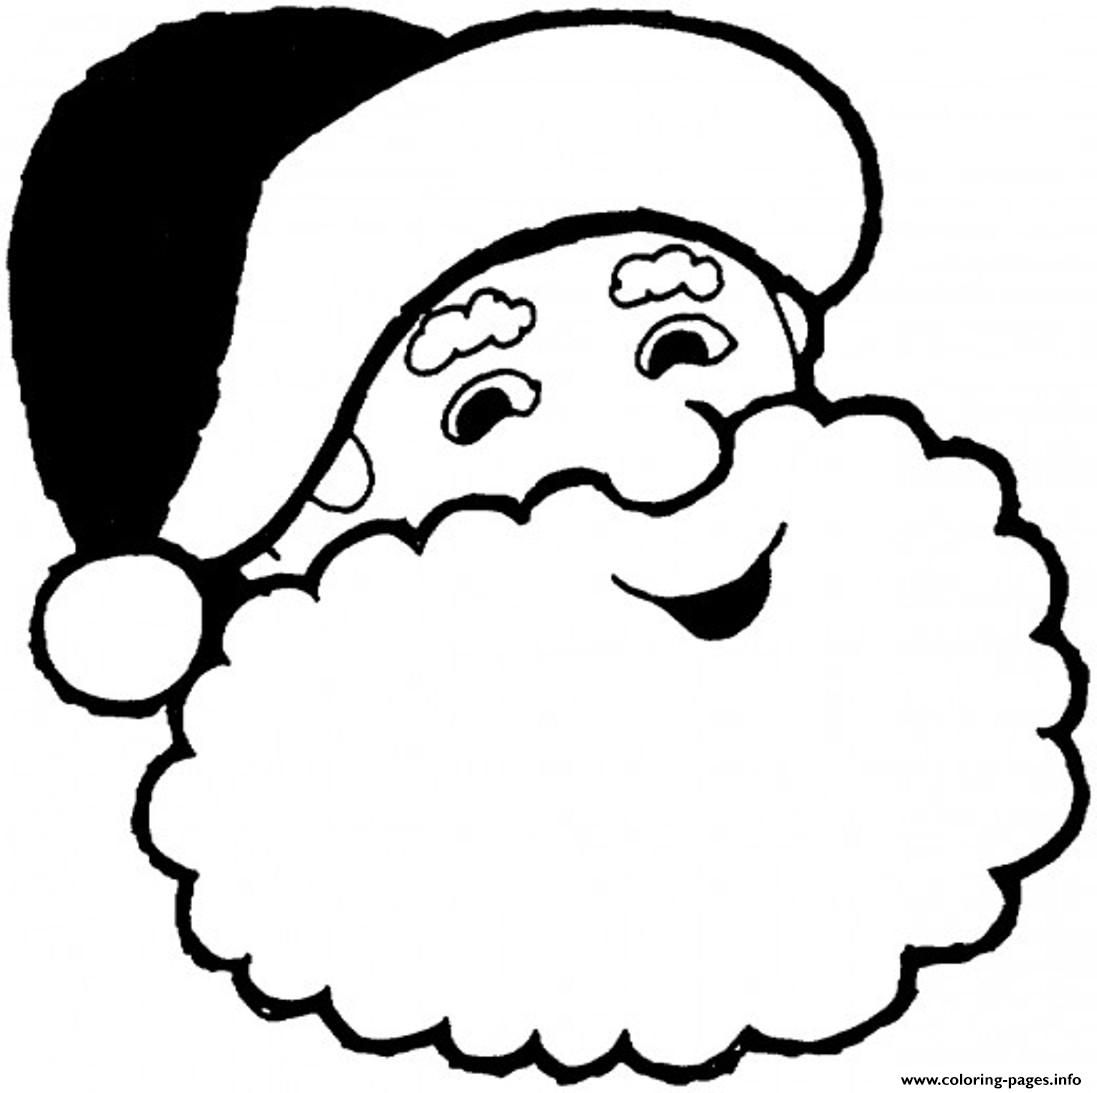 Santa Claus Coloring Pages To Print With Smiling S78d7 Free Christmas